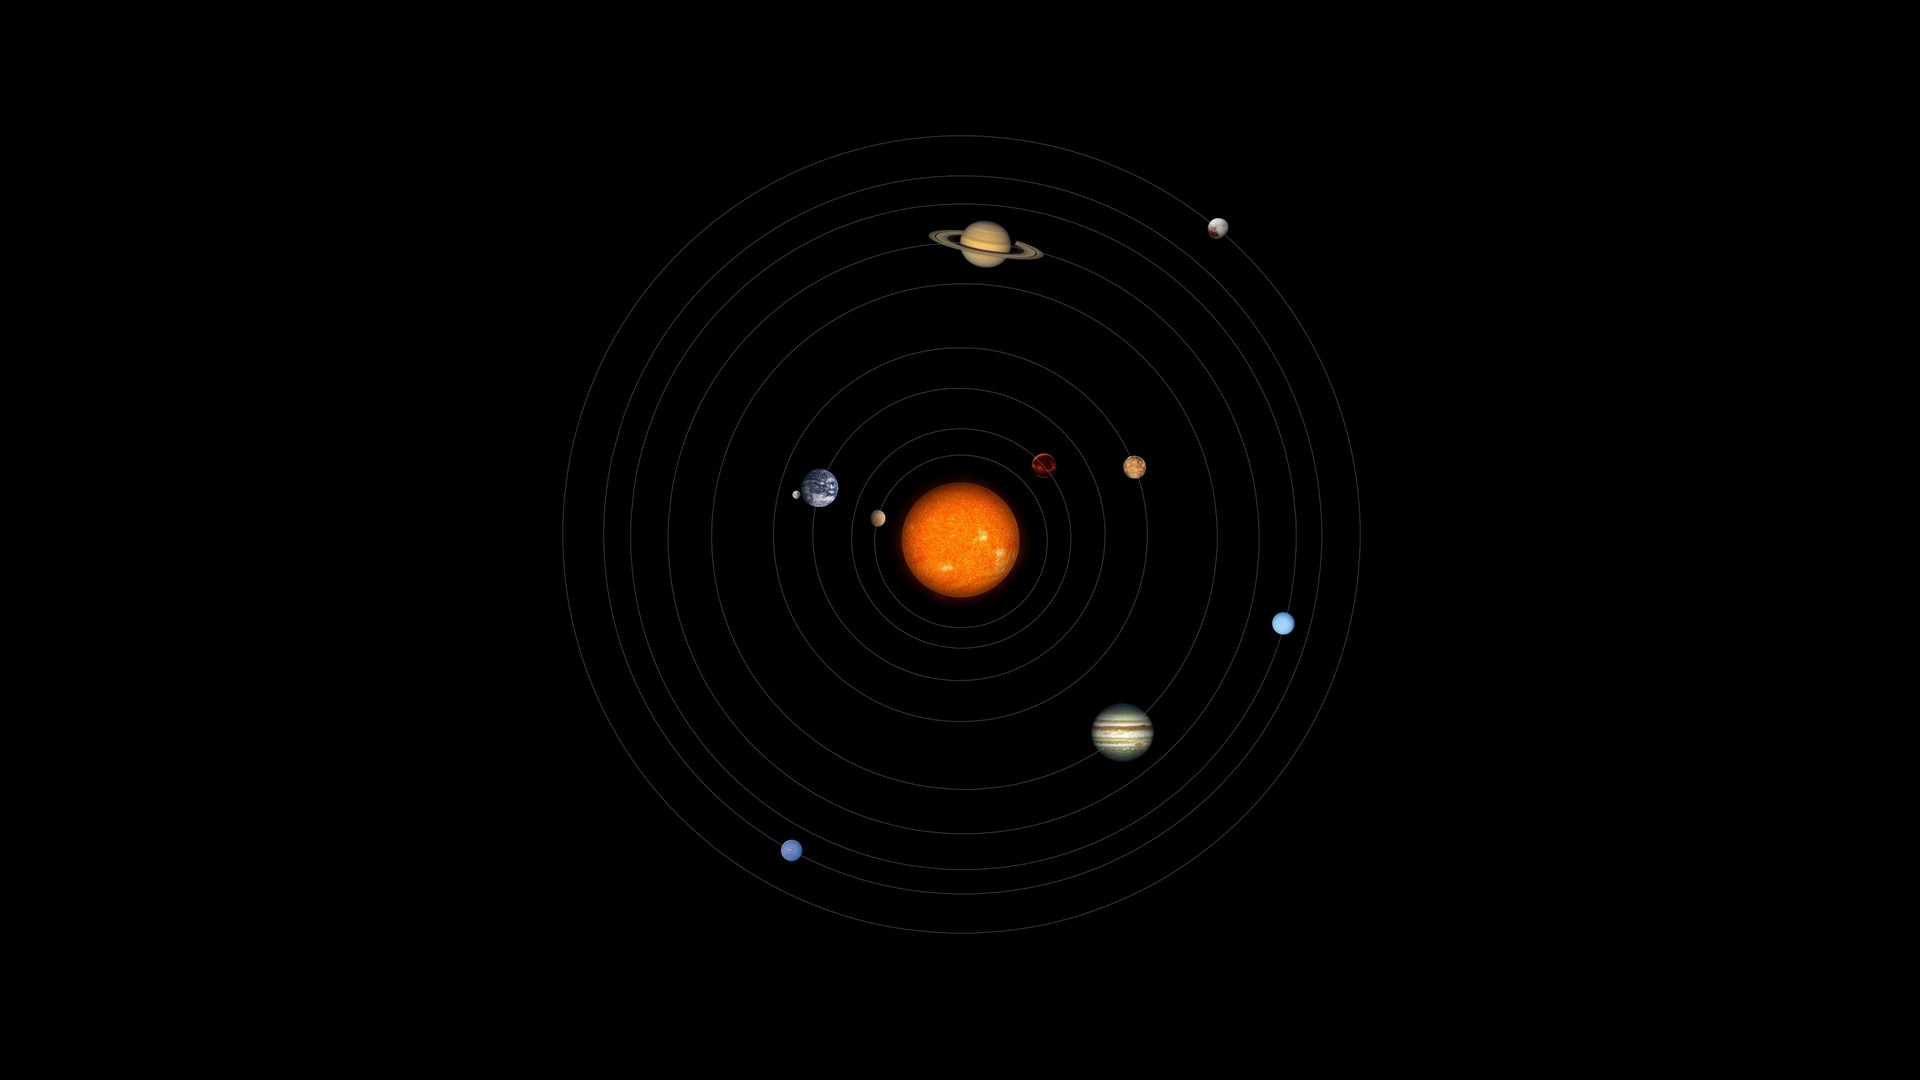 Solar System Circles Hd Wallpaper Iphone 7 Plus Iphone 8